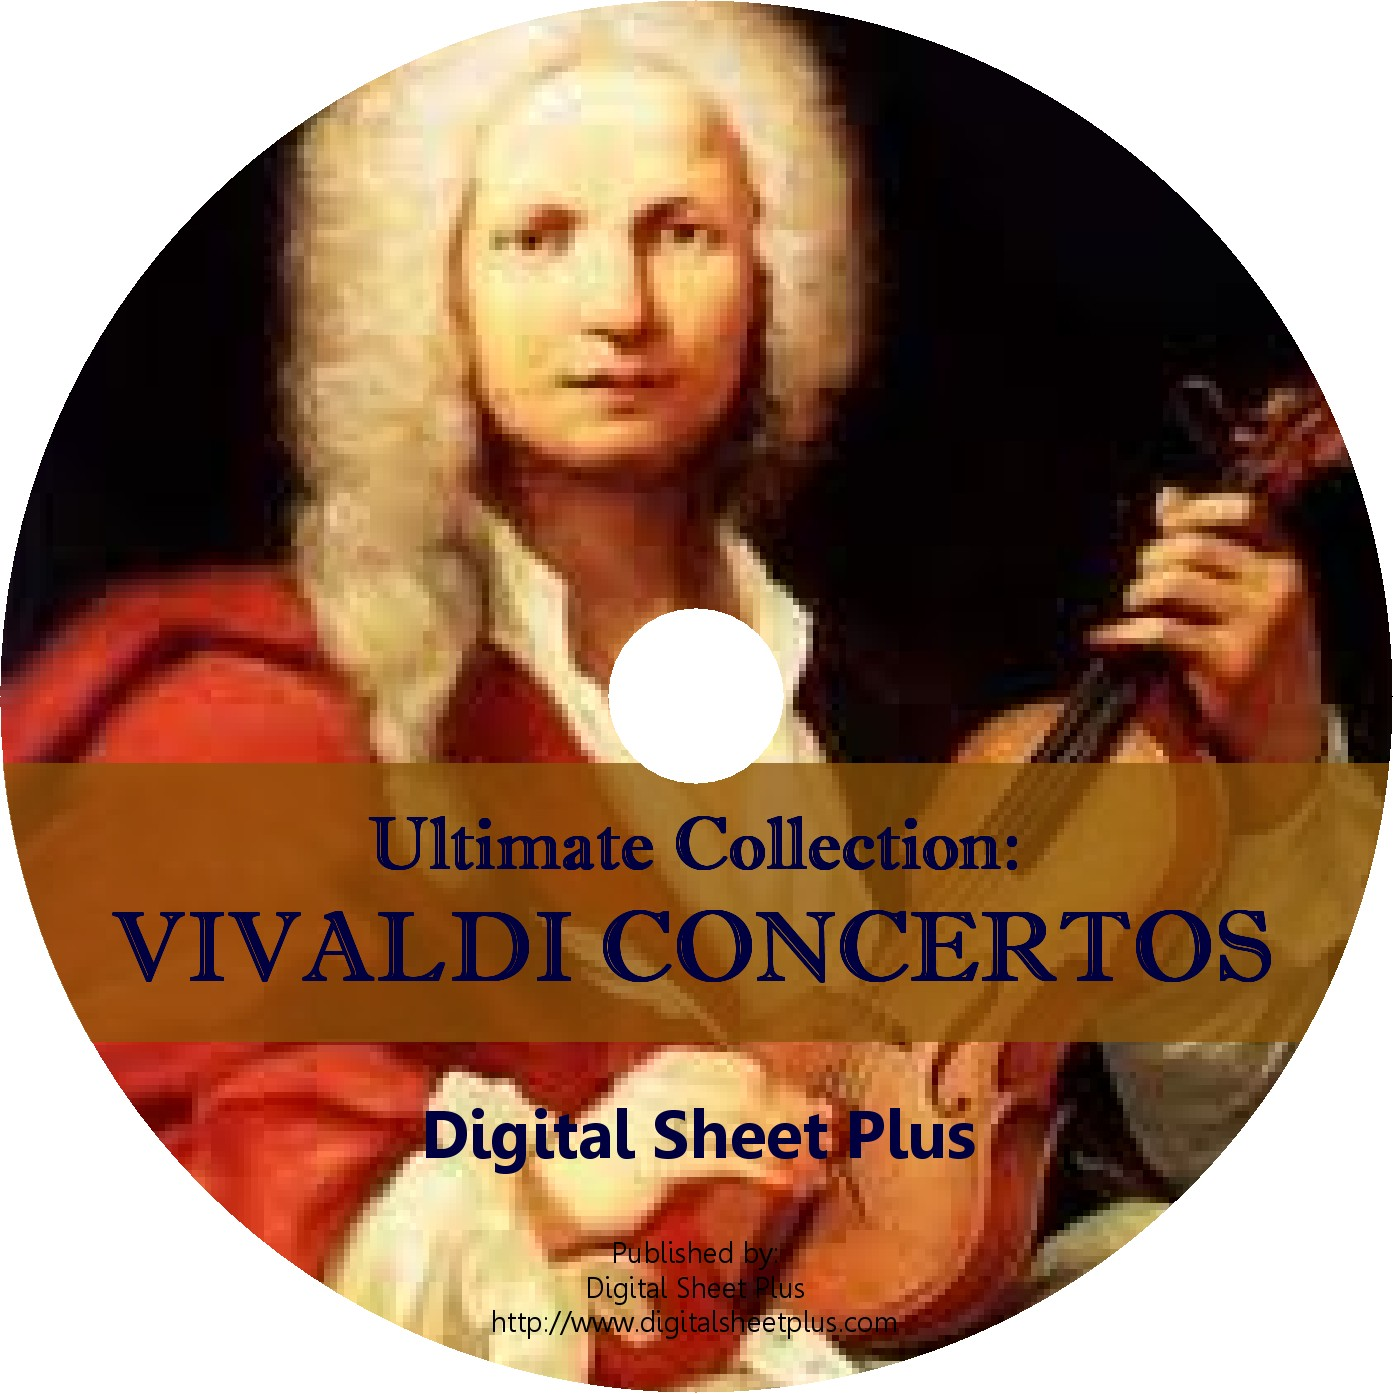 Ultimate Collection Vivaldi Concertos Sheet Music On Dvd